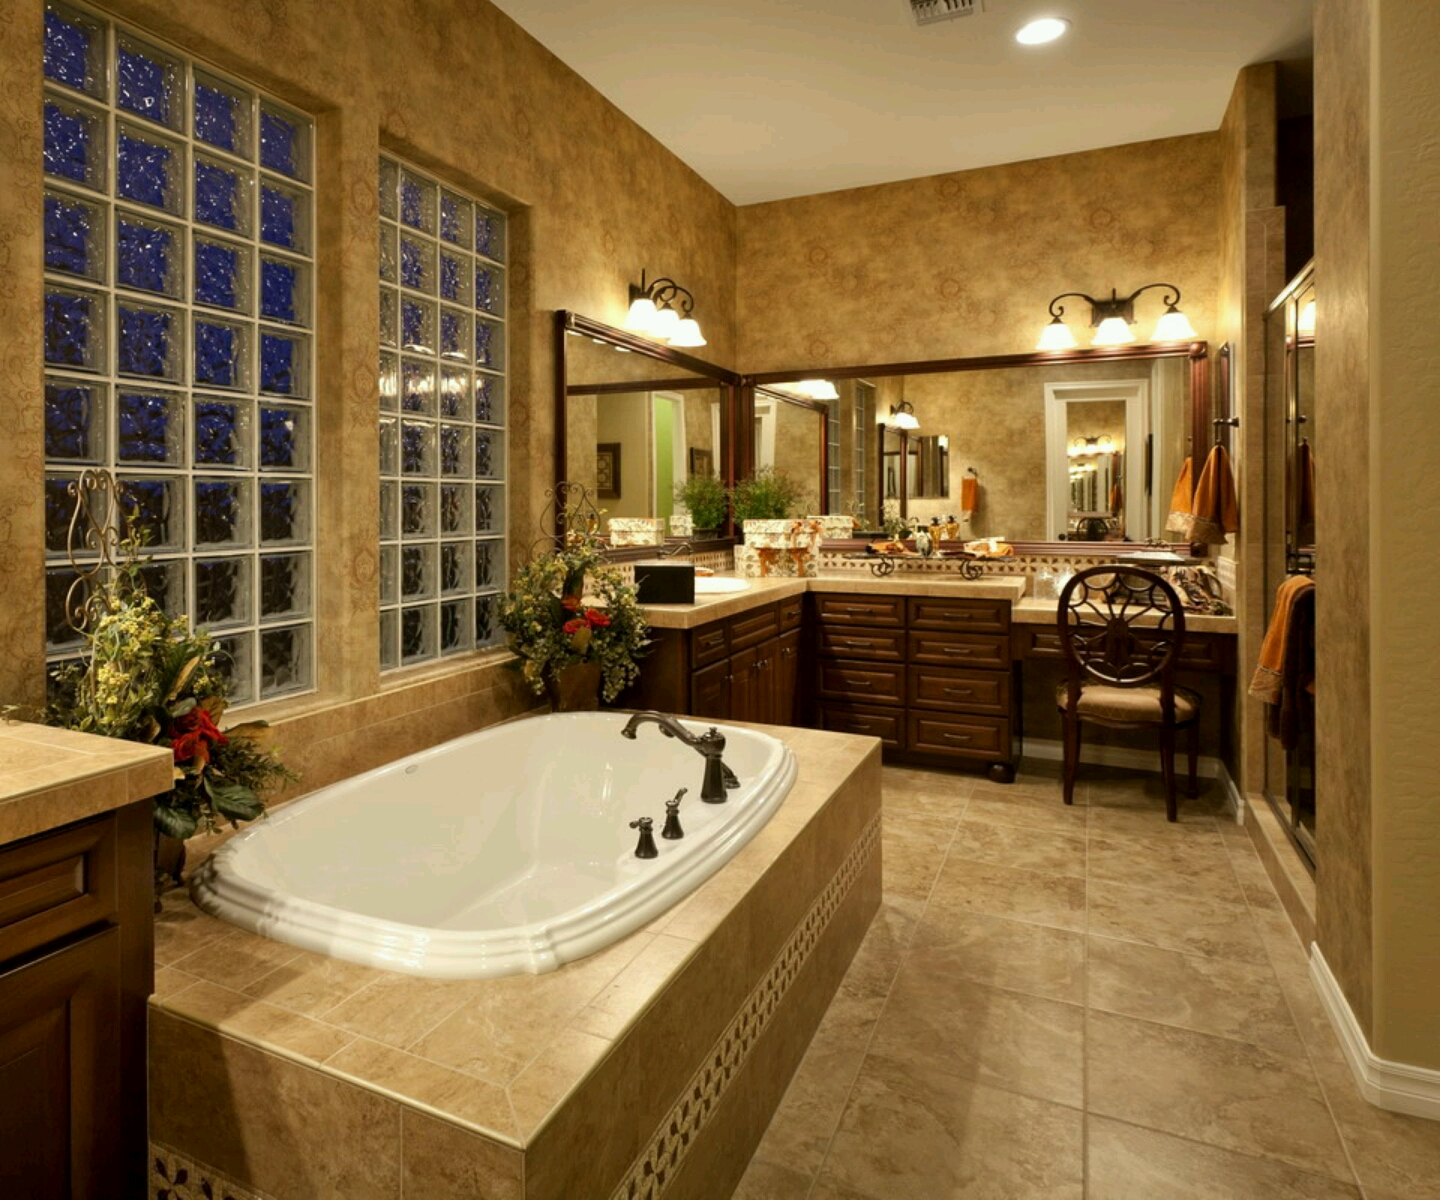 St louis kitchen bathroom remodeling for Bathroom designs with pictures